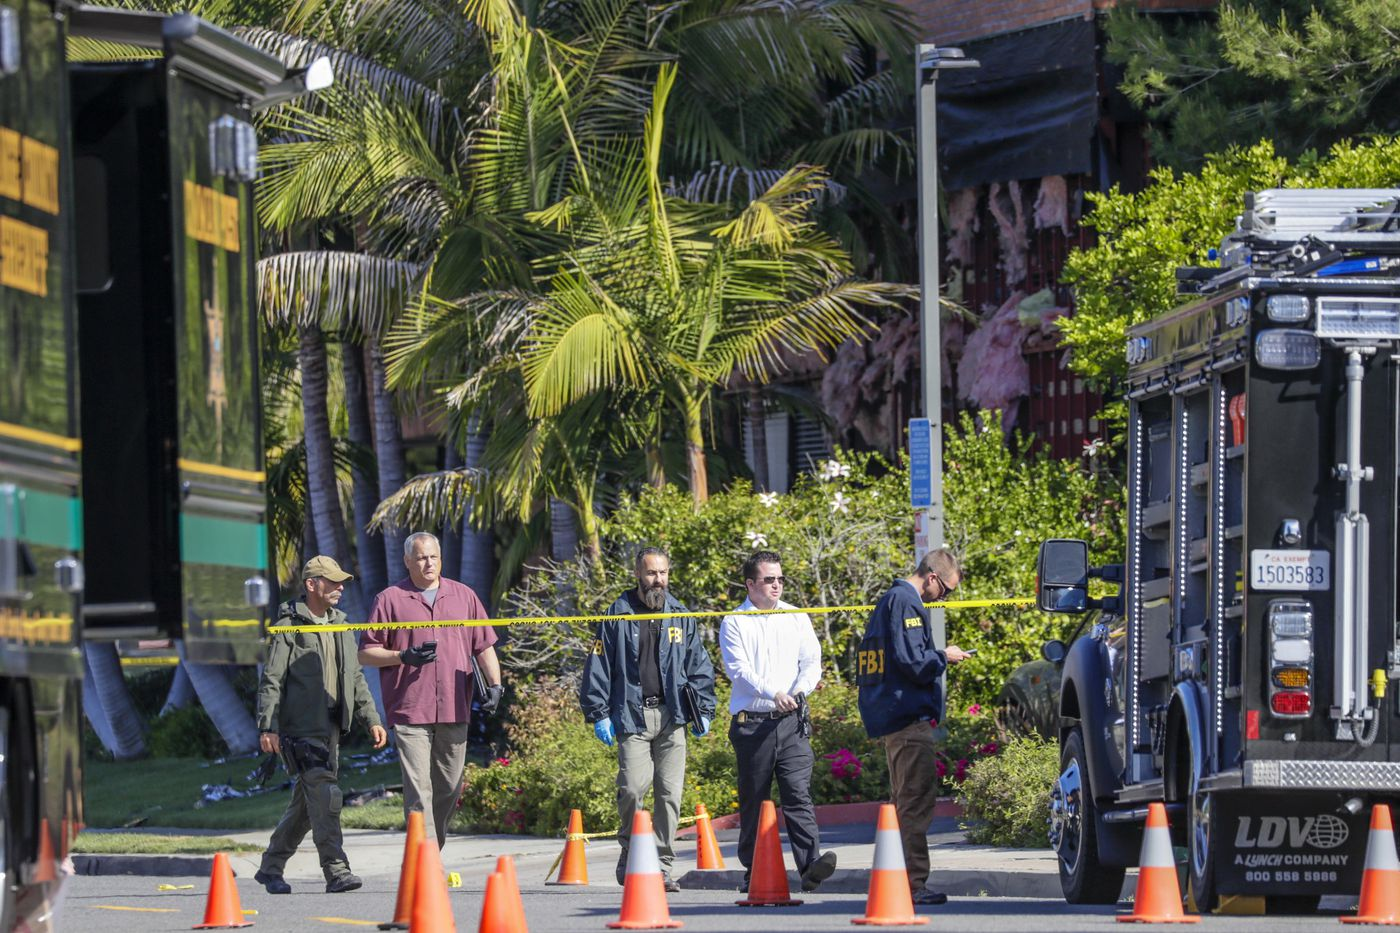 Officials investigate an Aliso Viejo bombing that killed a woman last month. (Credit: Irfan Khan / Los Angeles Times)